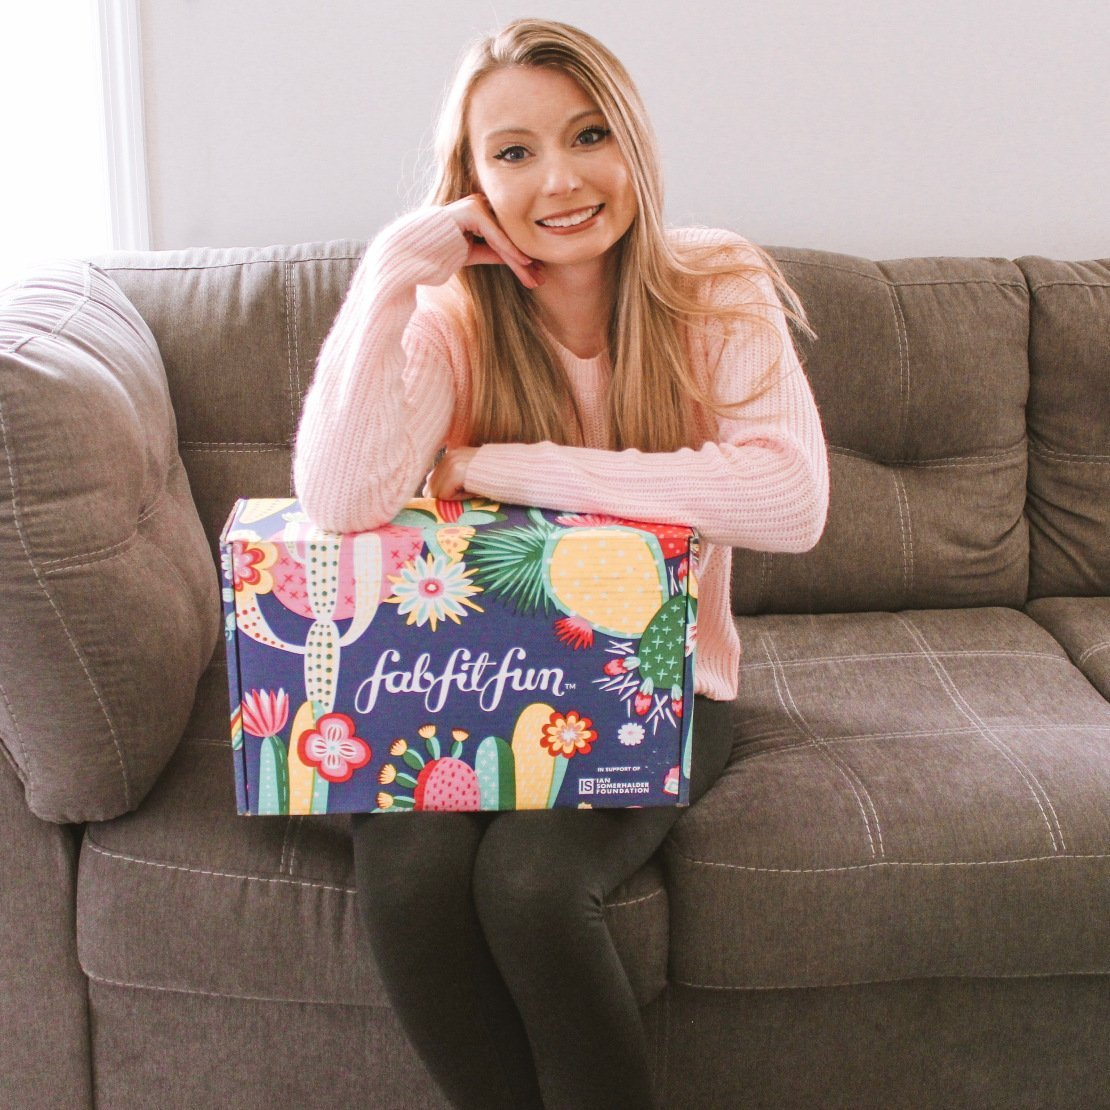 Unboxing my Spring 2019 FabFitFun box!